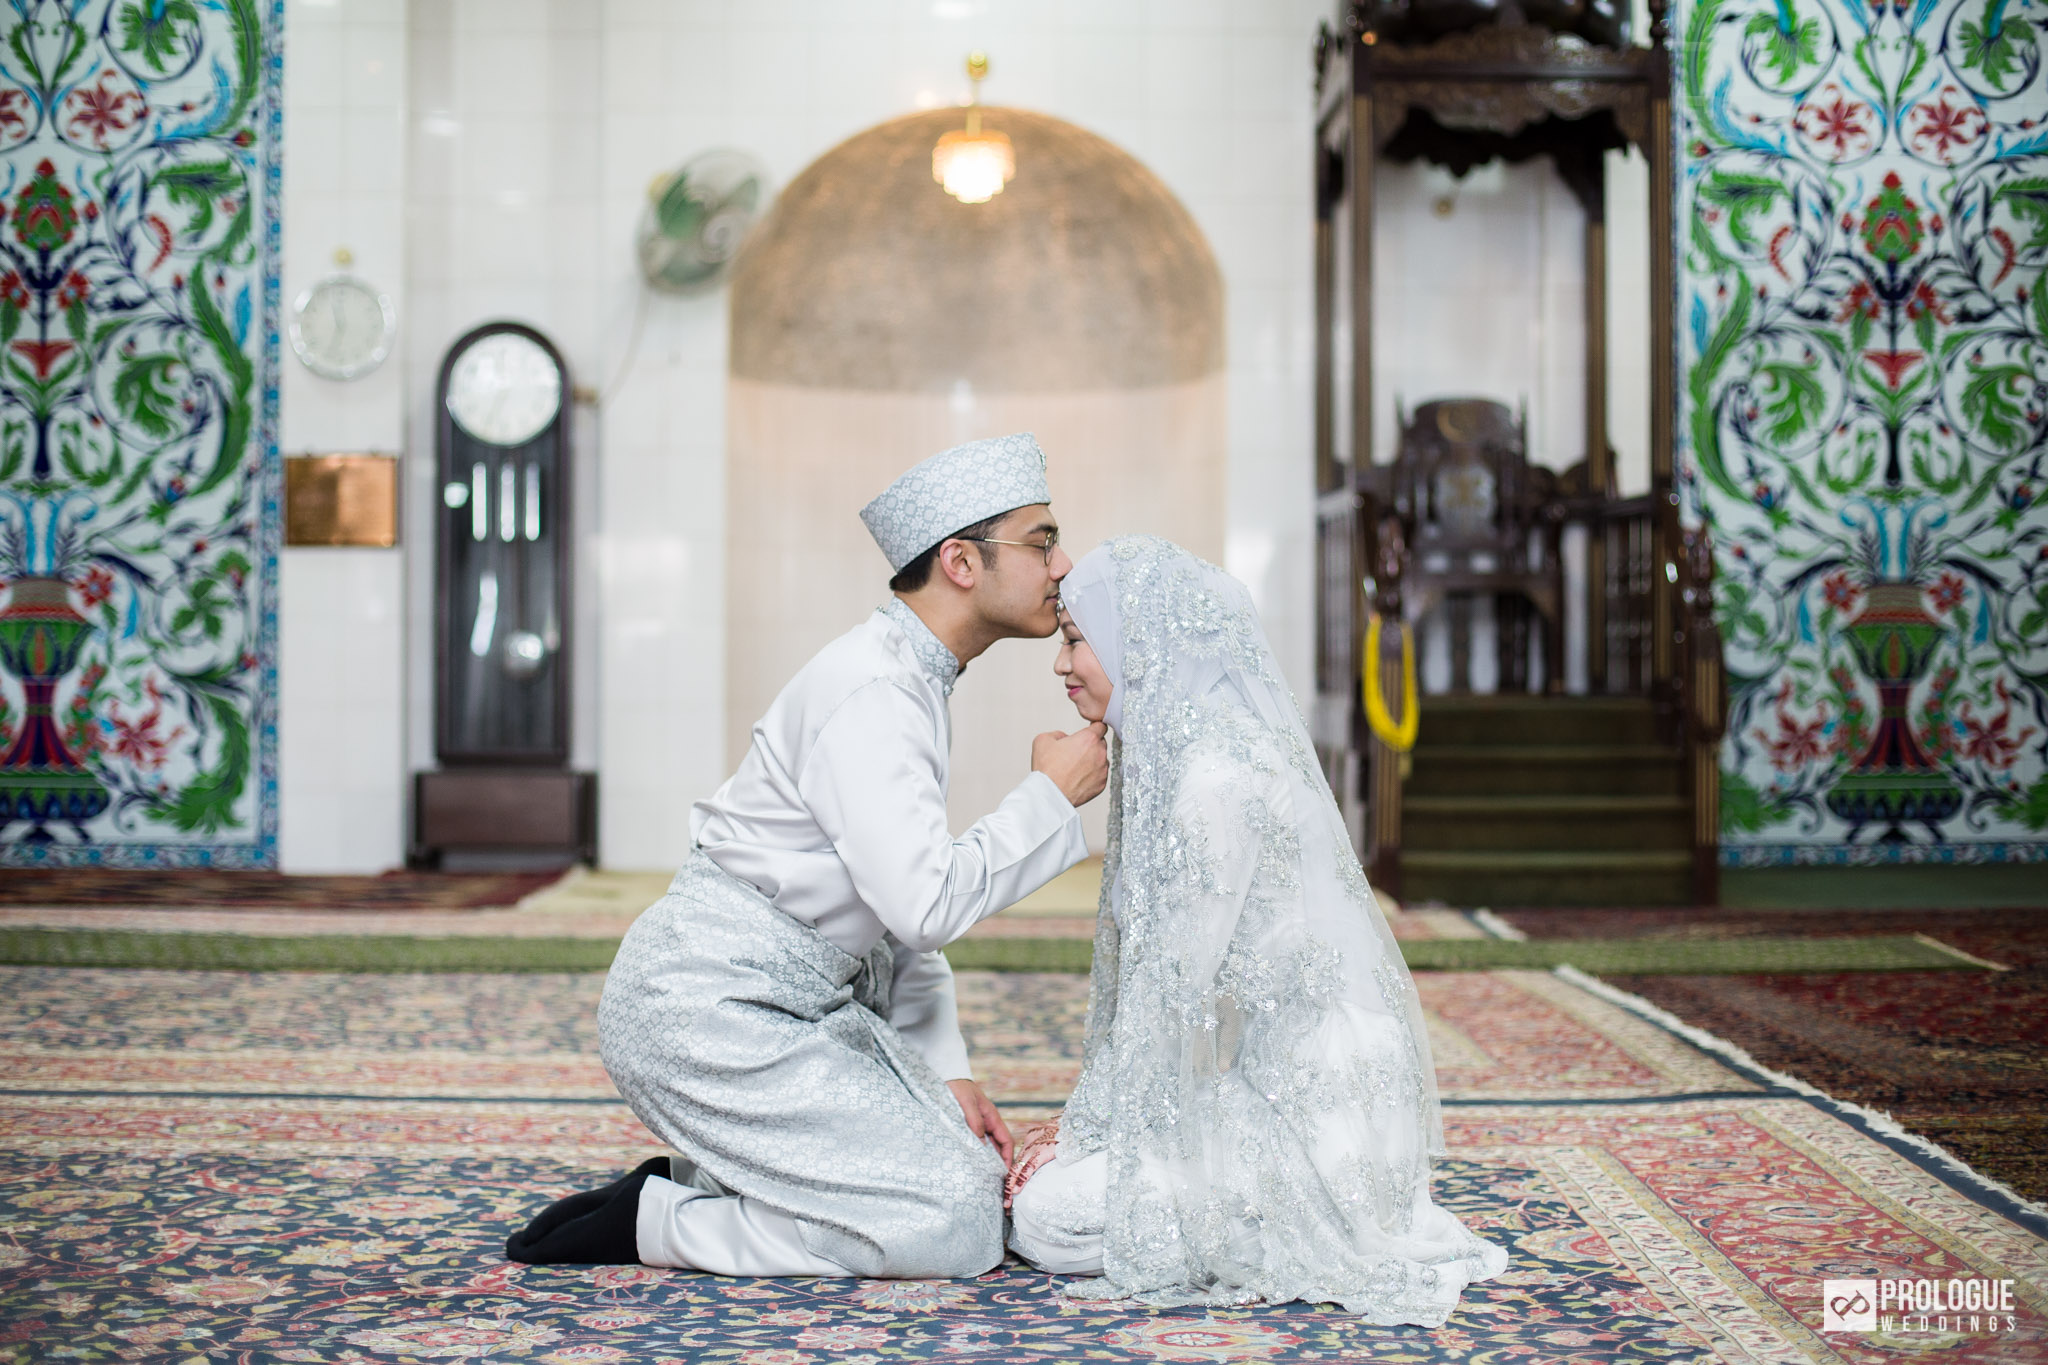 similarities in chinese and malay wedding In malaysia, bahasa malaysia (malay) is the only official language while english is widely used but not an official language in singapore, bahasa melayu (malay) is official with english, mandarin chinese, and indian tamil.